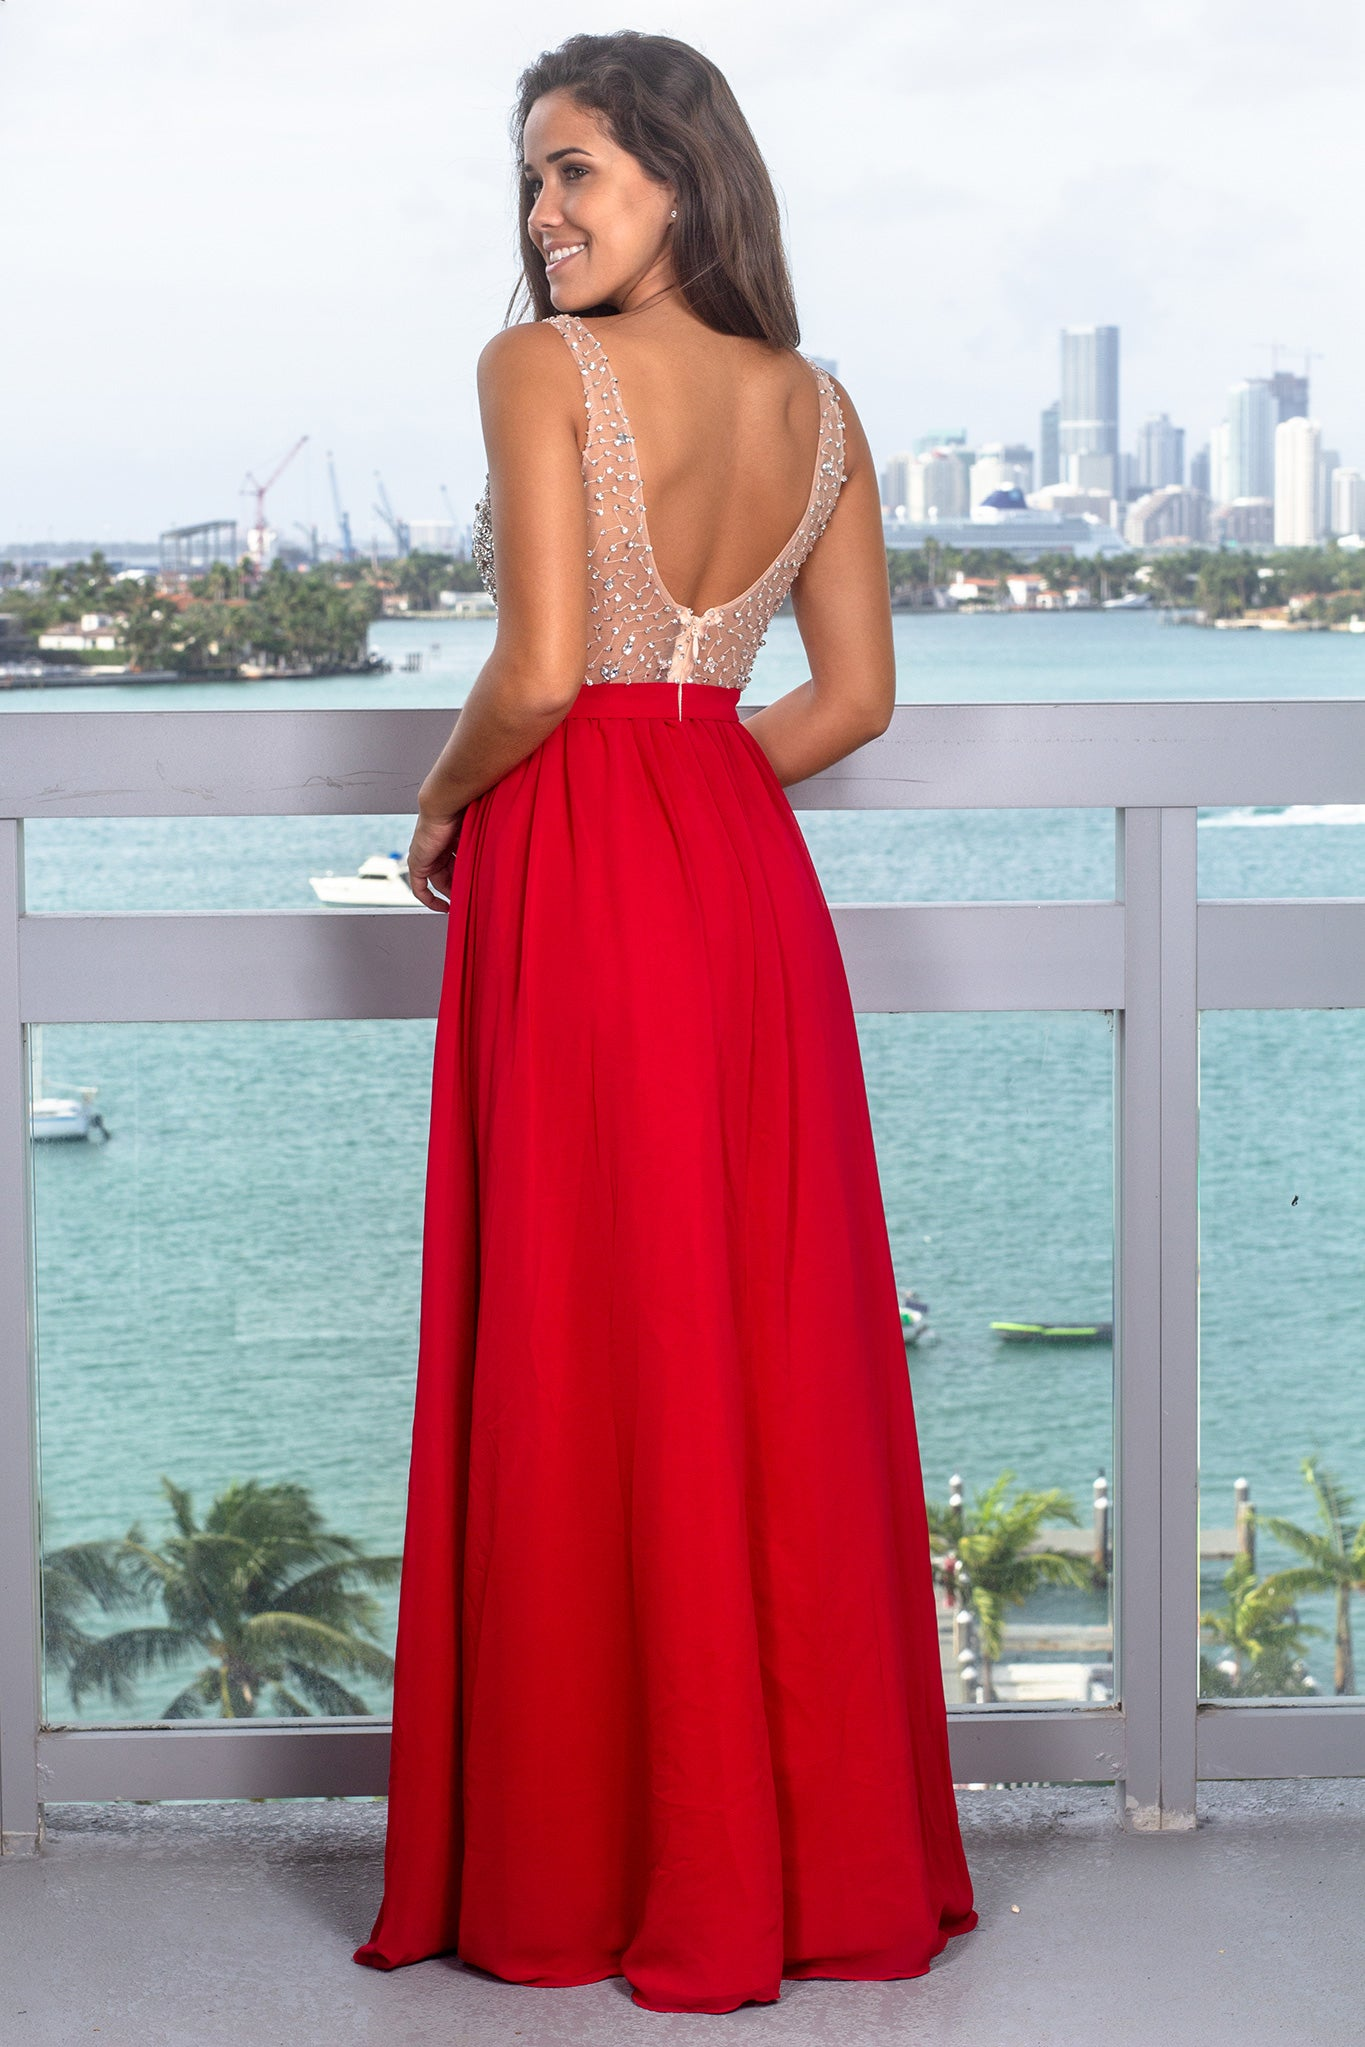 Red Maxi Dress with Silver Jewels